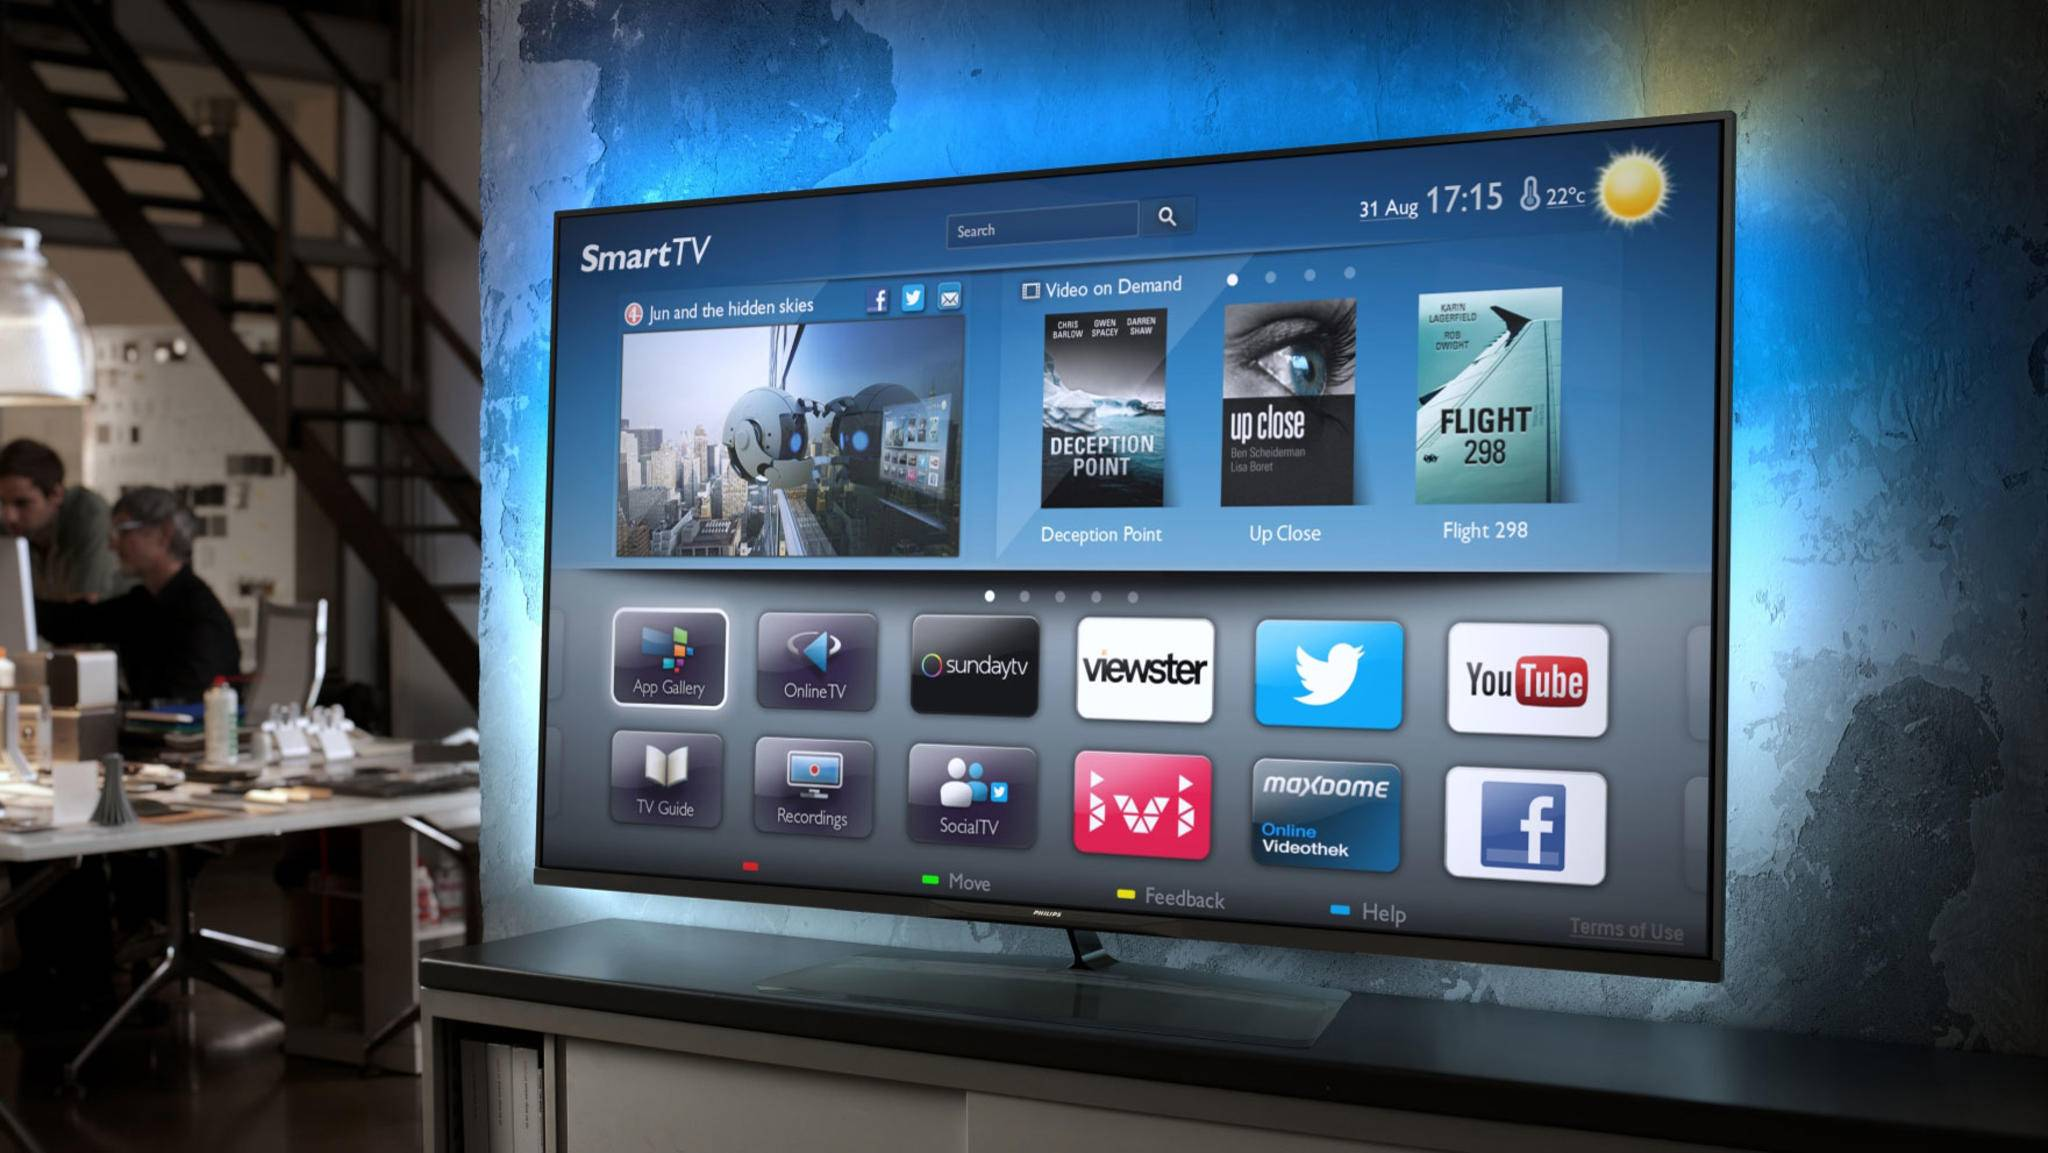 💣 Ss iptv philips playlist download | SS IPTV Playlist Smart TV